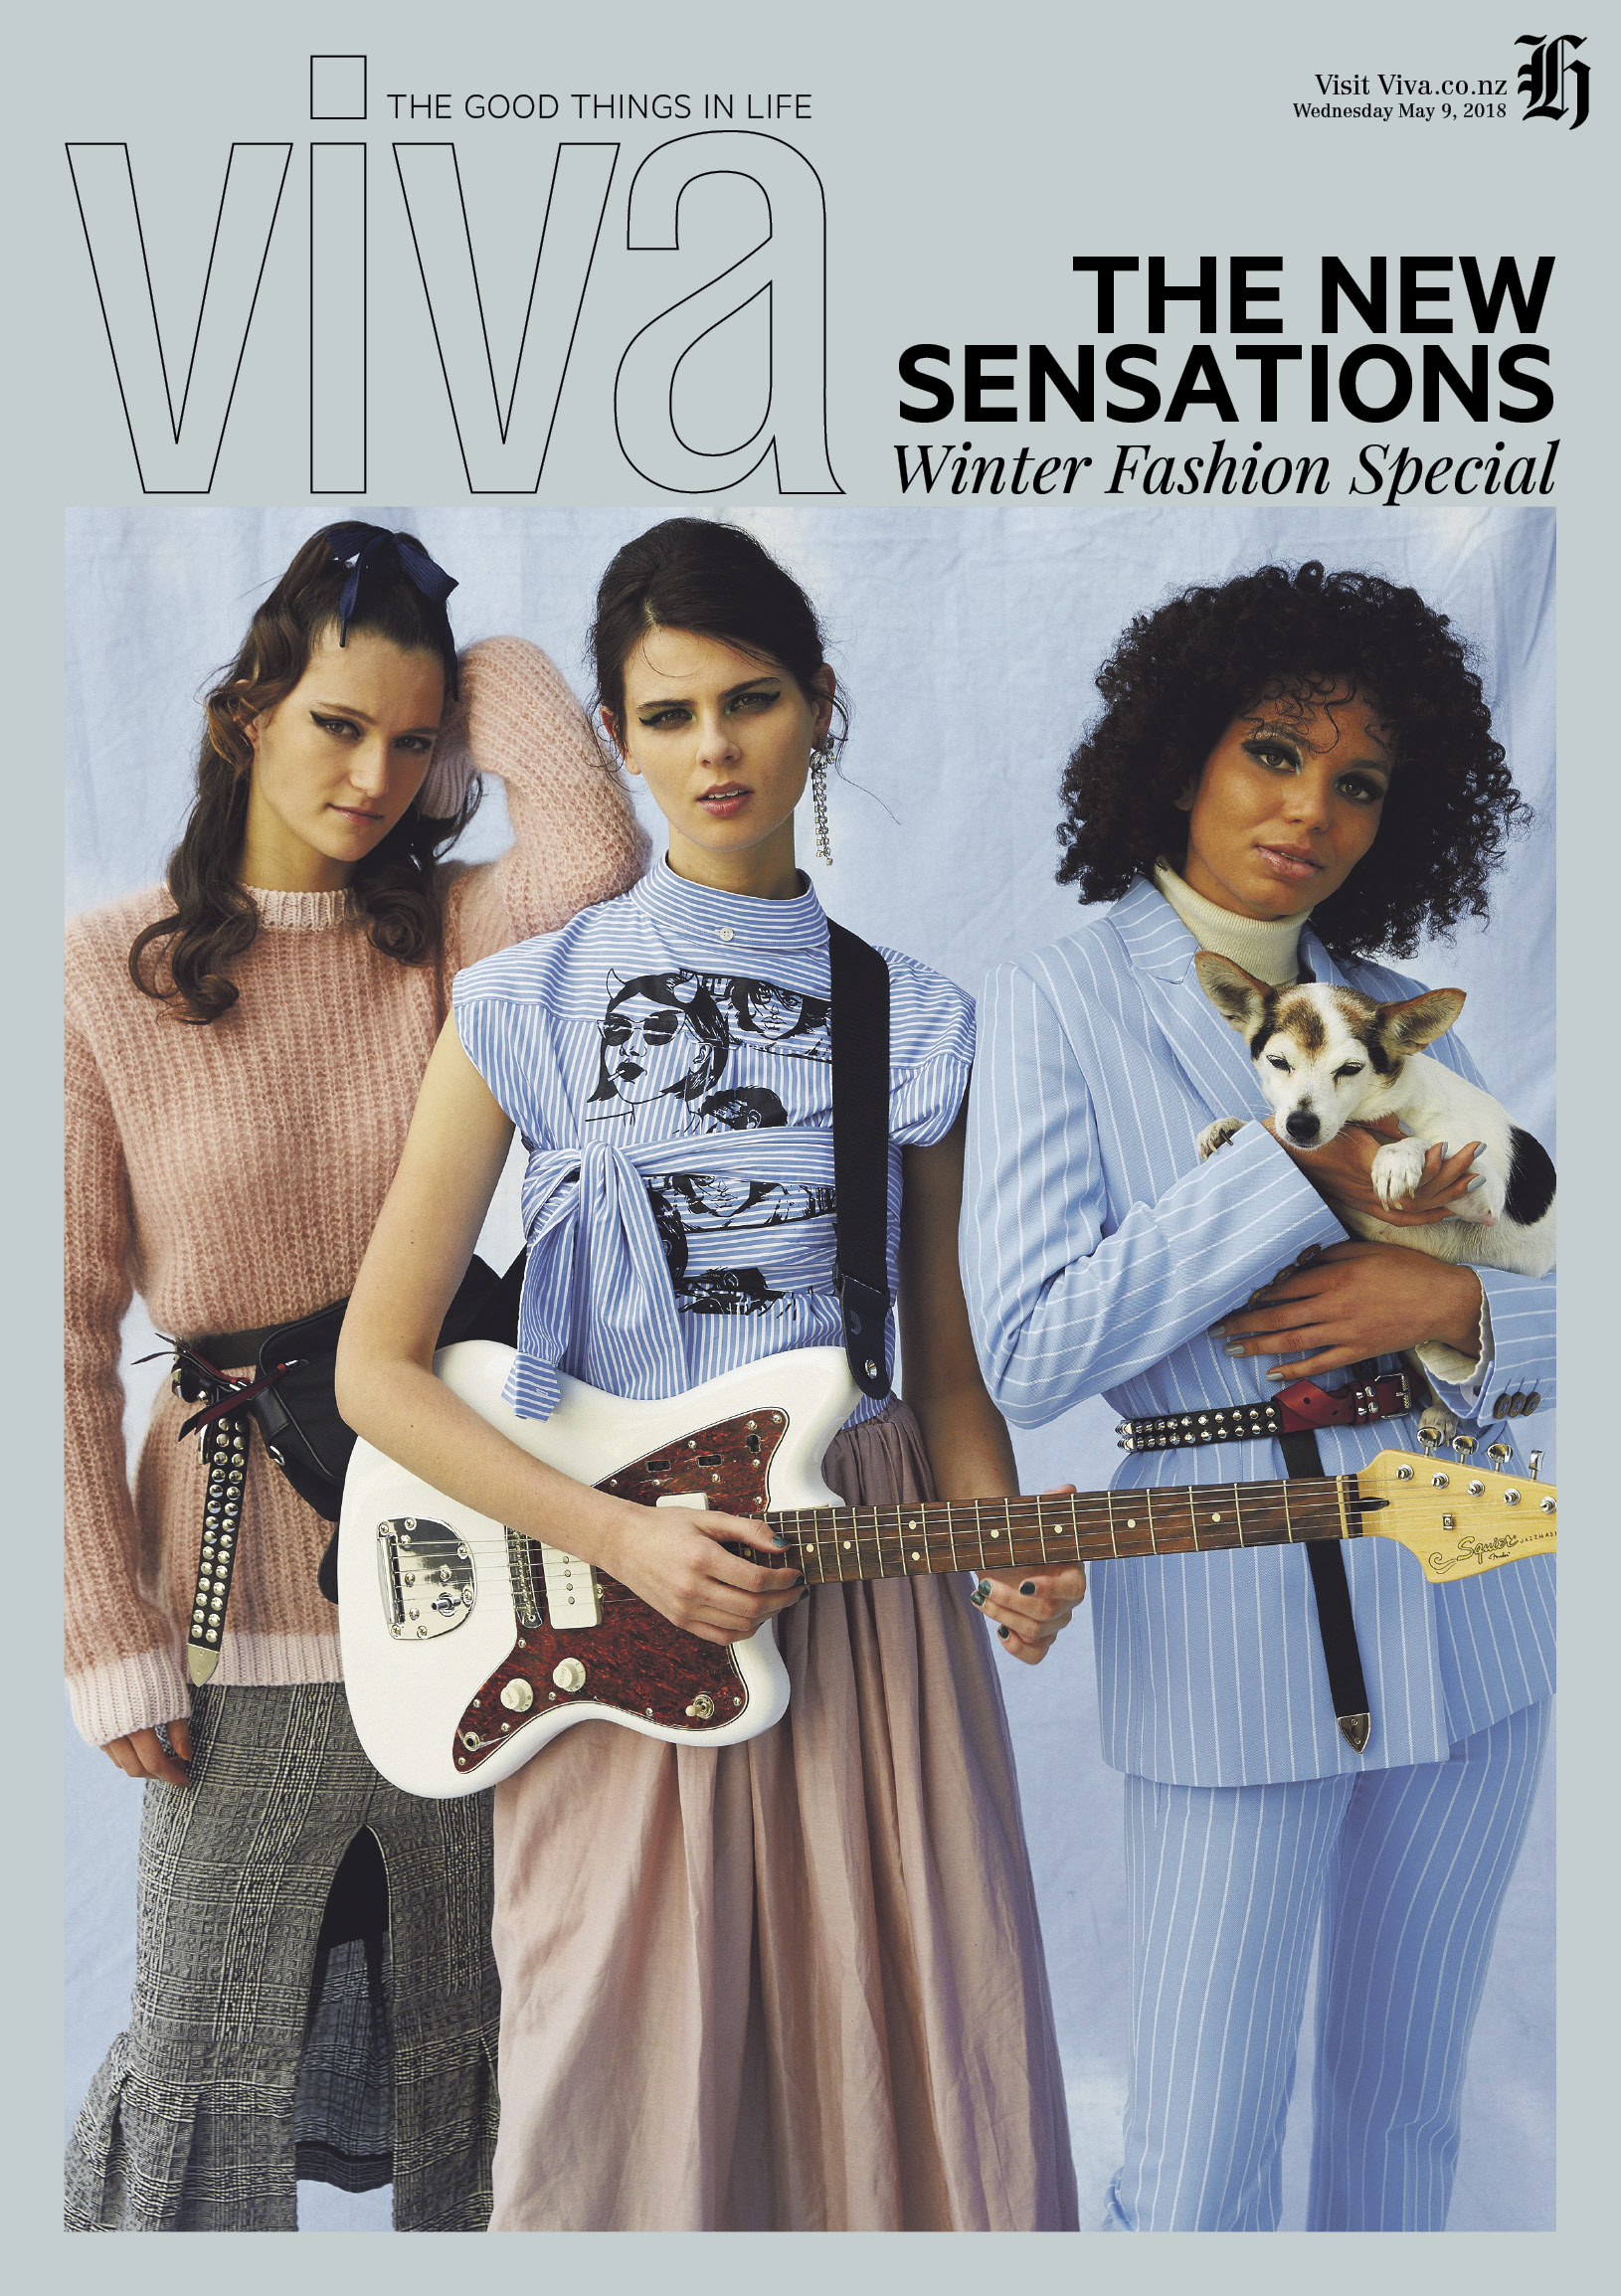 VIVA - The New Sensations